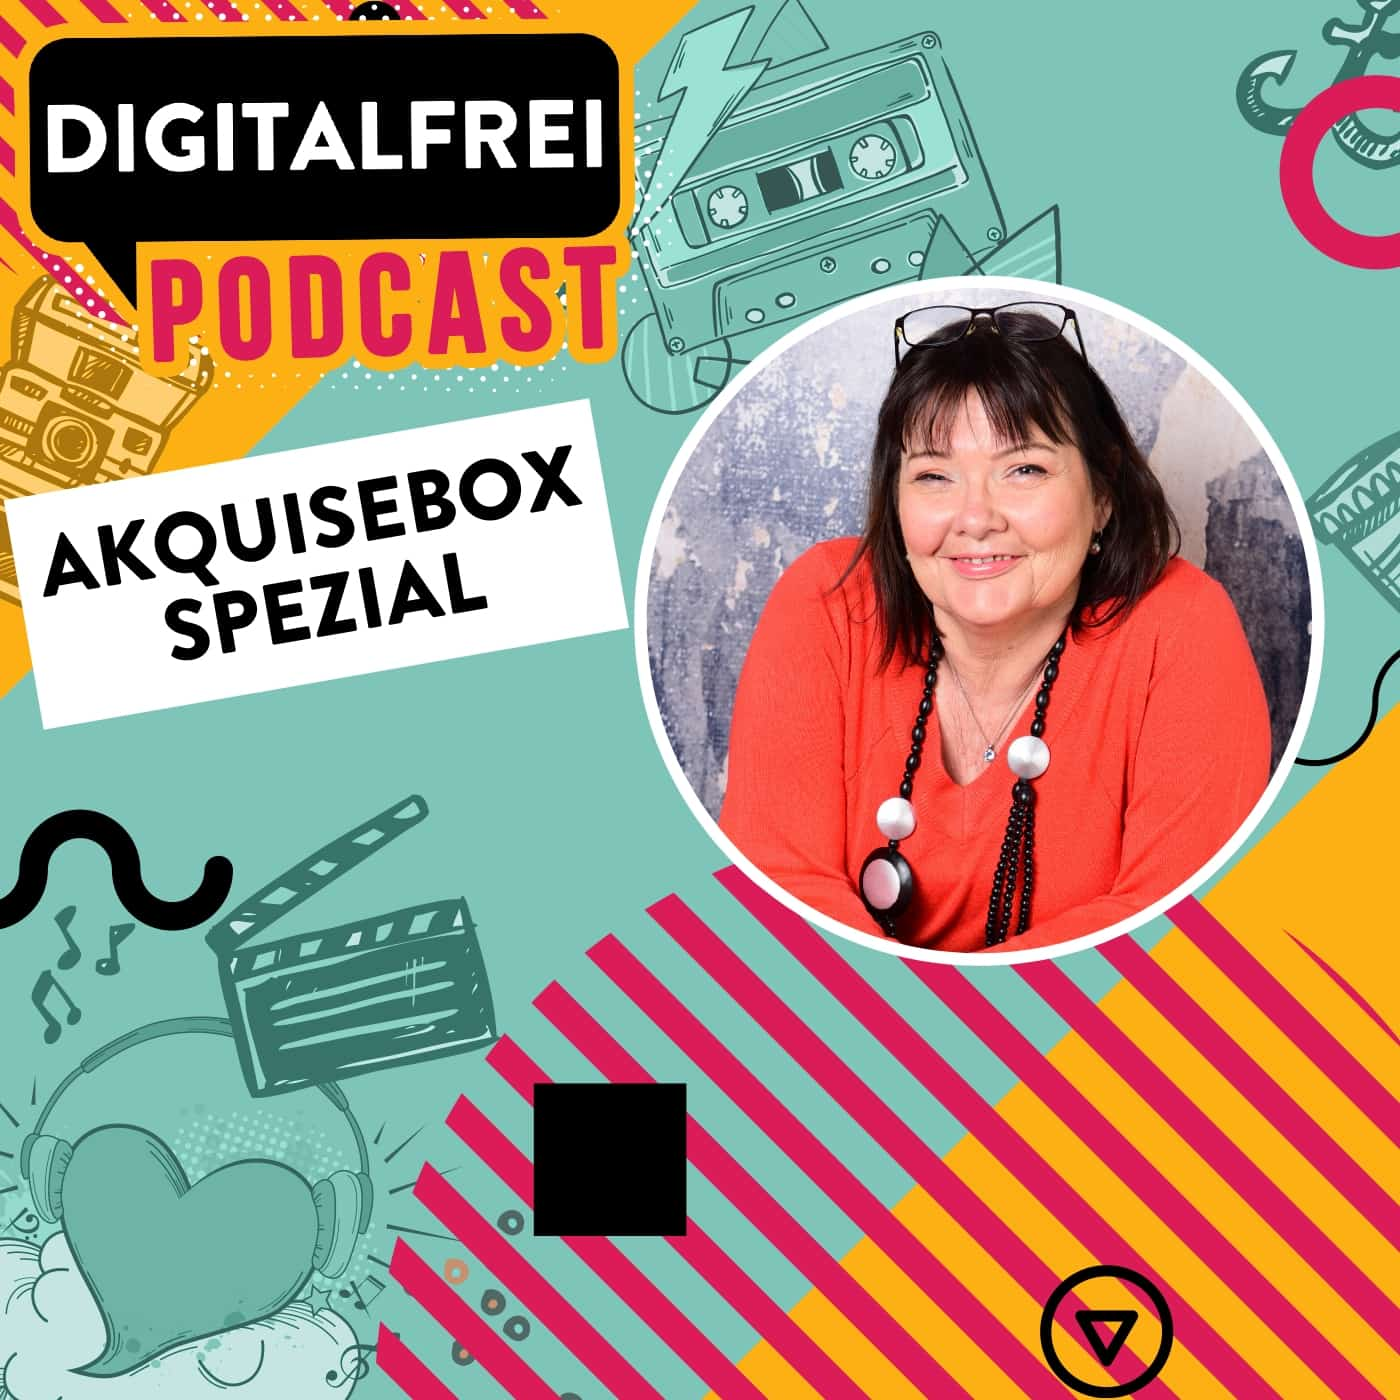 Akquisebox Spezial – Andrea Rohde – Expertin für Marketingtexte